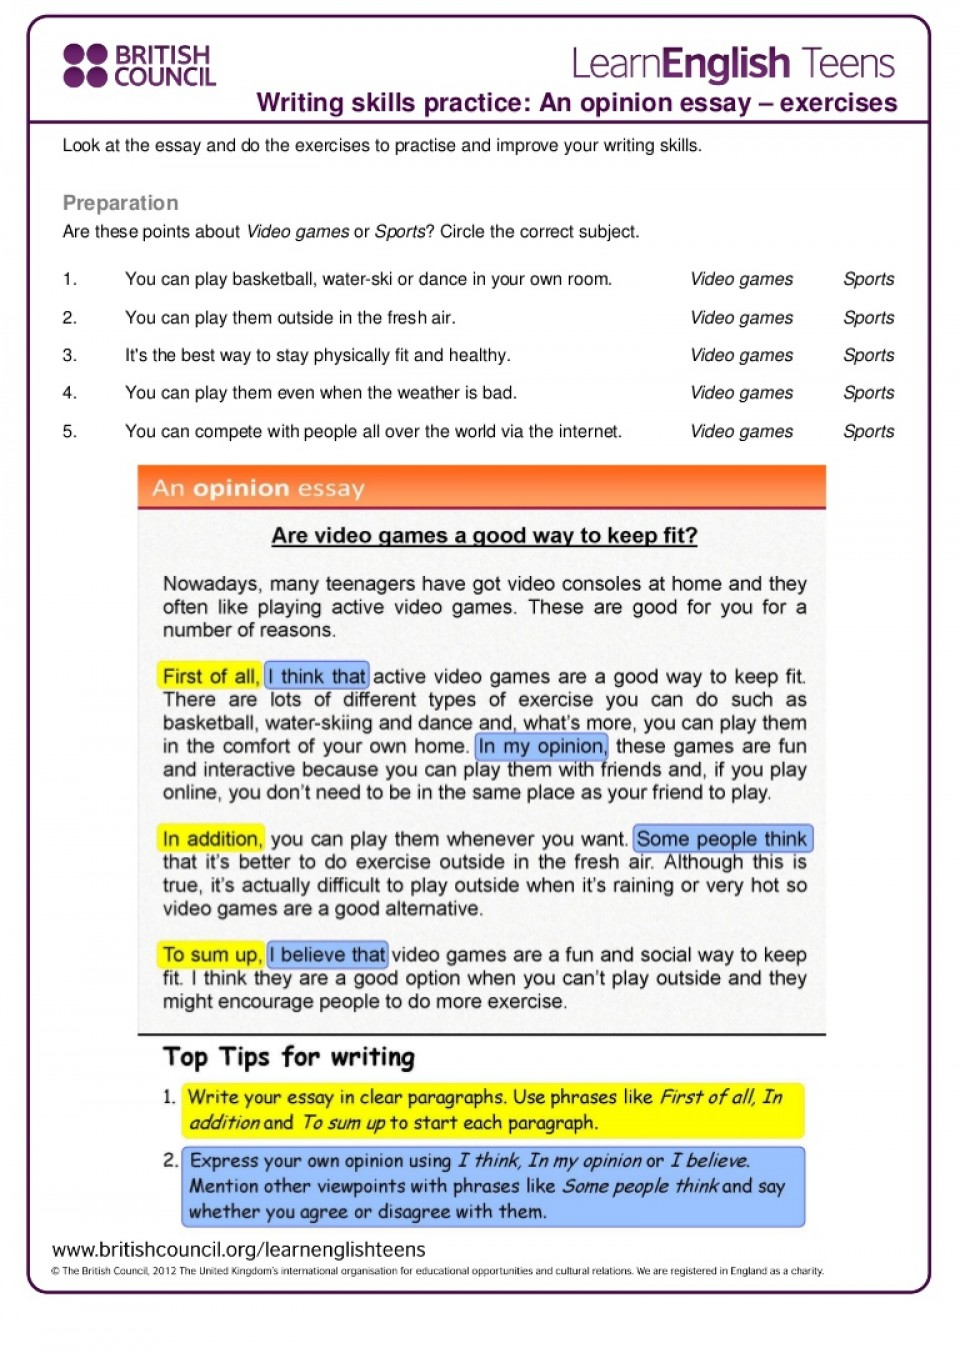 009 Writing Skills Essay Online Ielts Courses Podcast Jc Economics How To Write An Opinion 4th Grade Anopinionessay Exercises Thumbn Unbelievable 3rd College 960